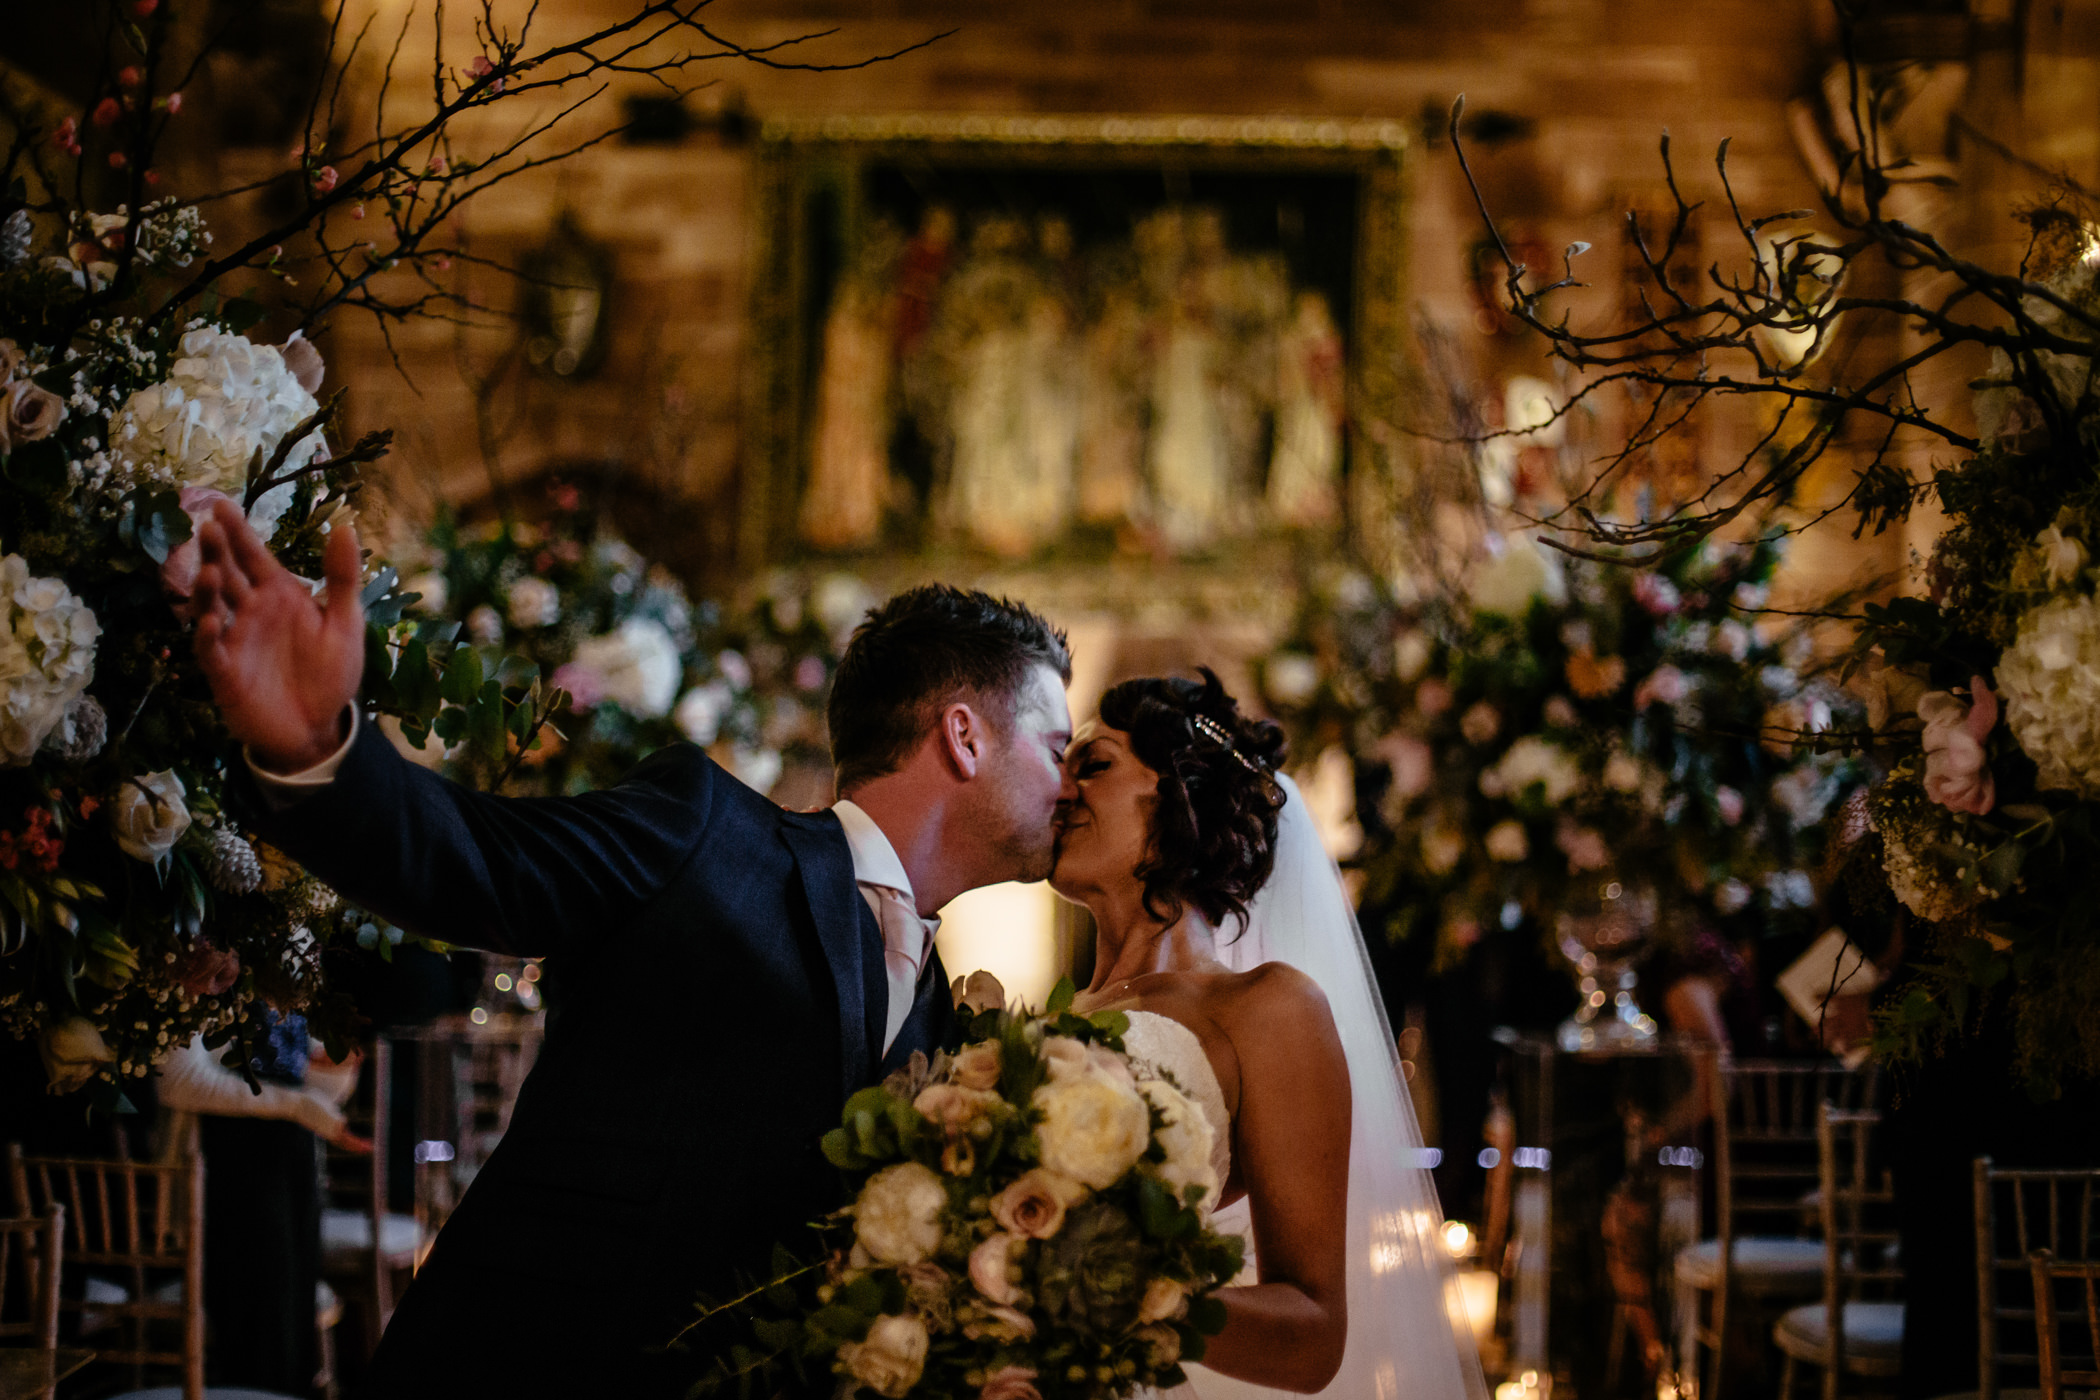 Ant & Louise NYE Peckforton Castle Wedding- Sansom Photography-13